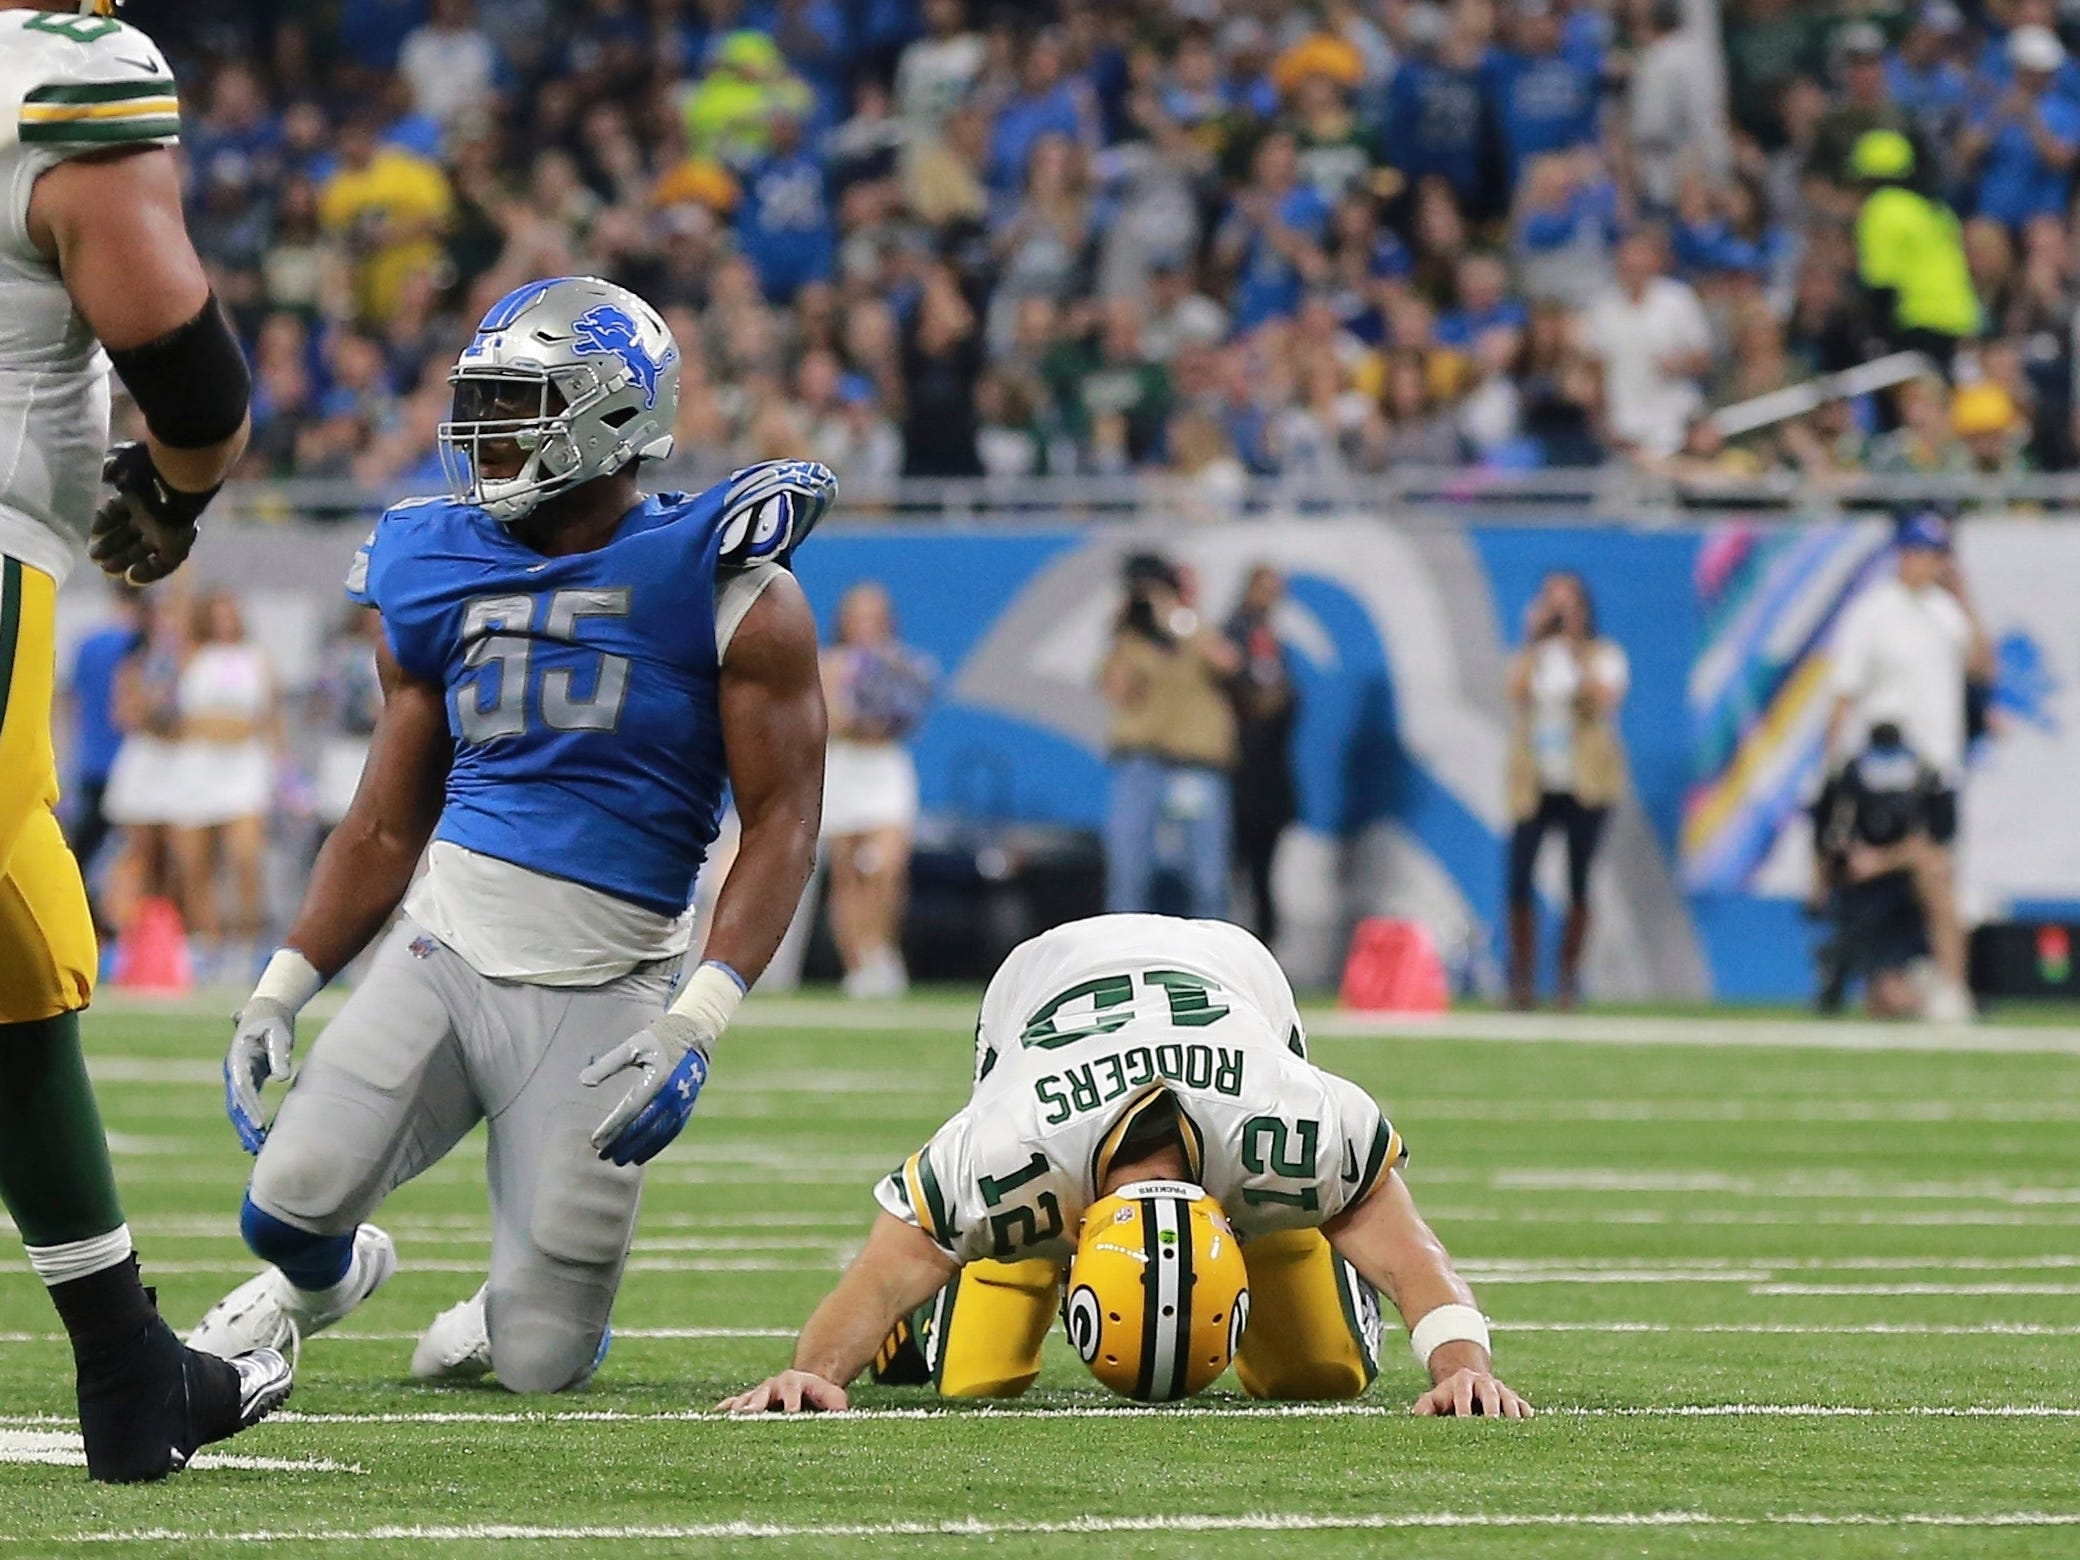 Green Bay Packers quarterback Aaron Rodgers (12) reacts after being tackled by Detroit Lions defensive end Romeo Okwara (95) during the first half of an NFL football game, Sunday, Oct. 7, 2018, in Detroit.